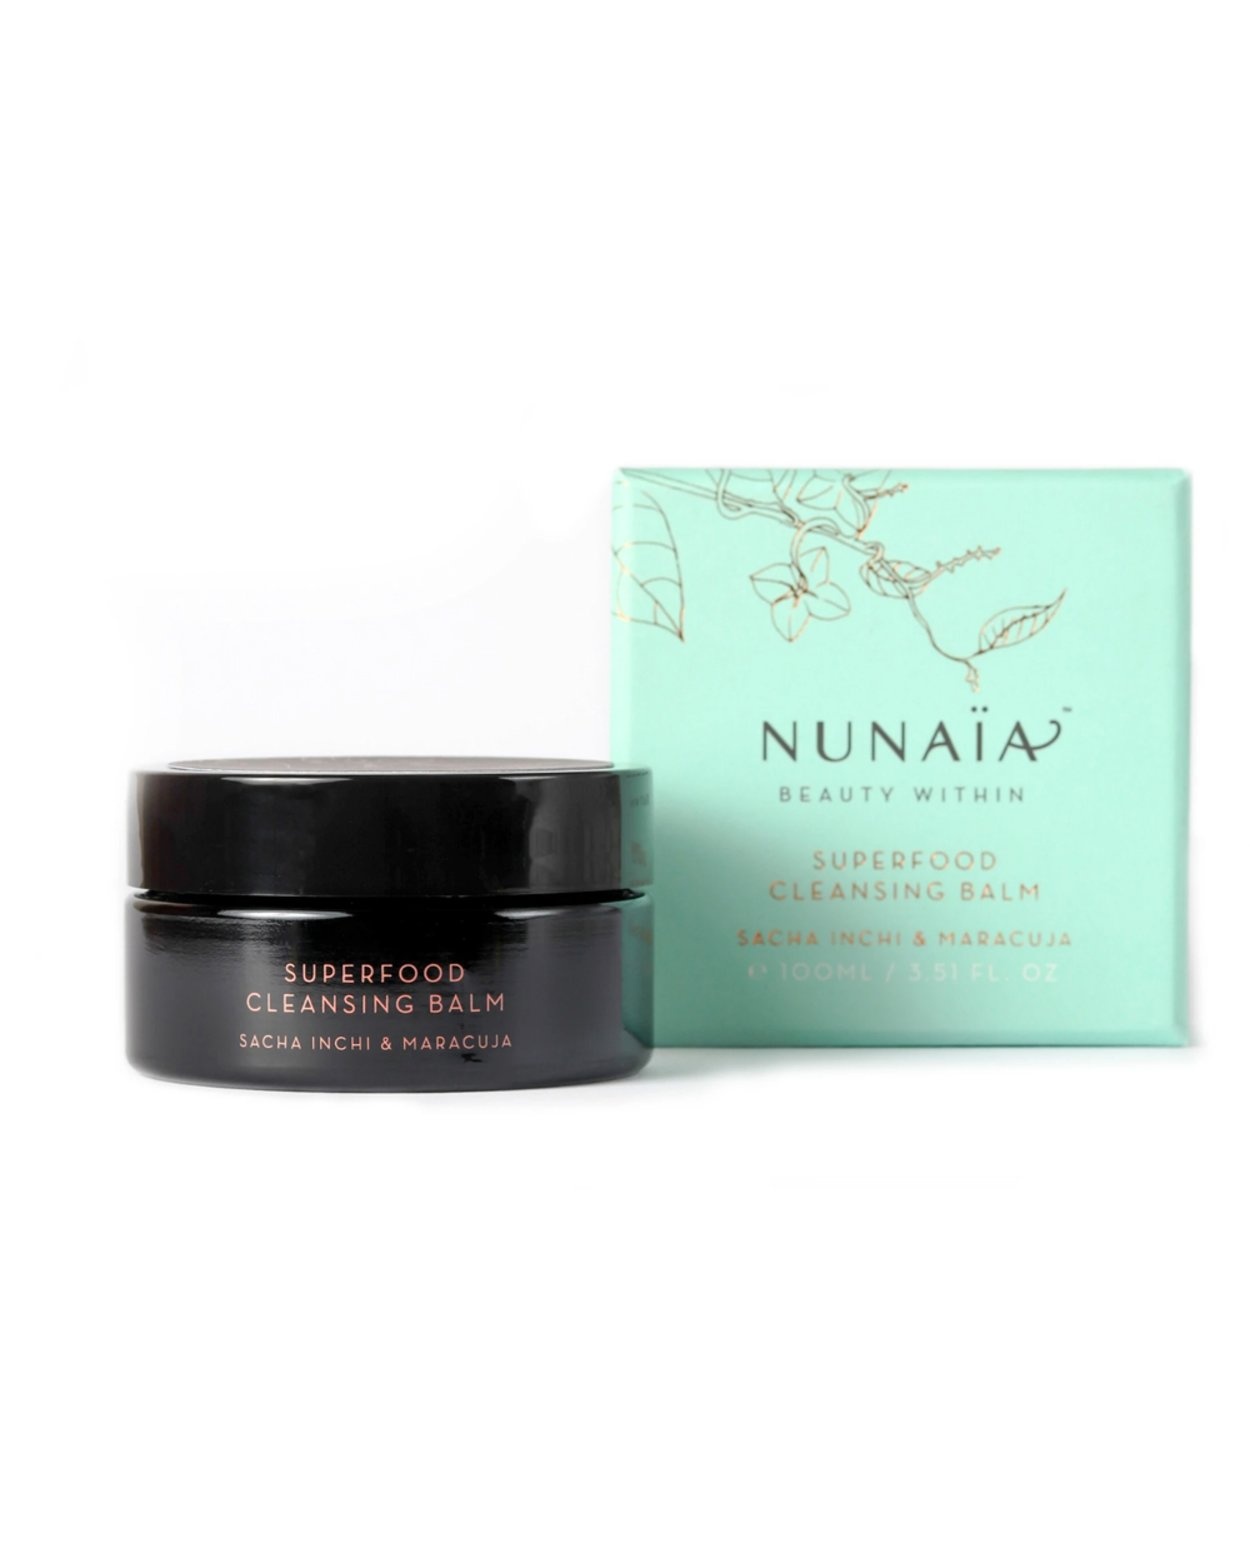 Superfood Cleansing Balm